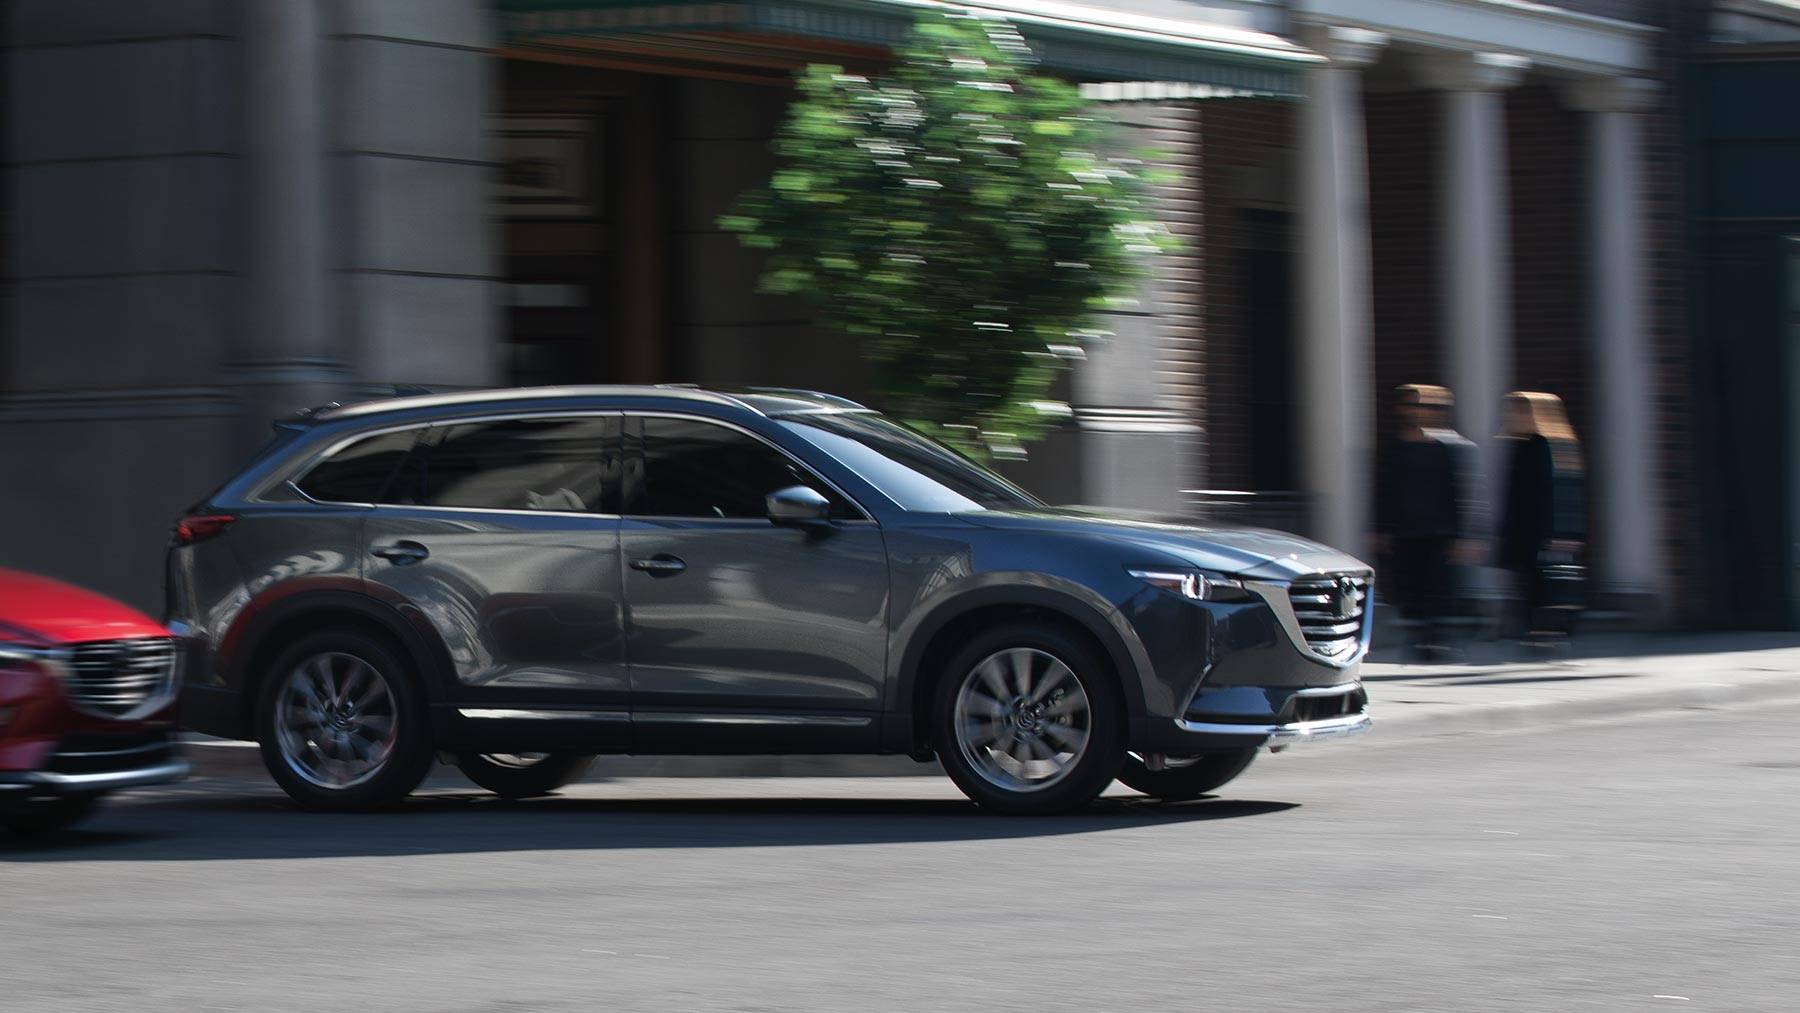 2019 Mazda CX-9 for Sale near Davis, CA